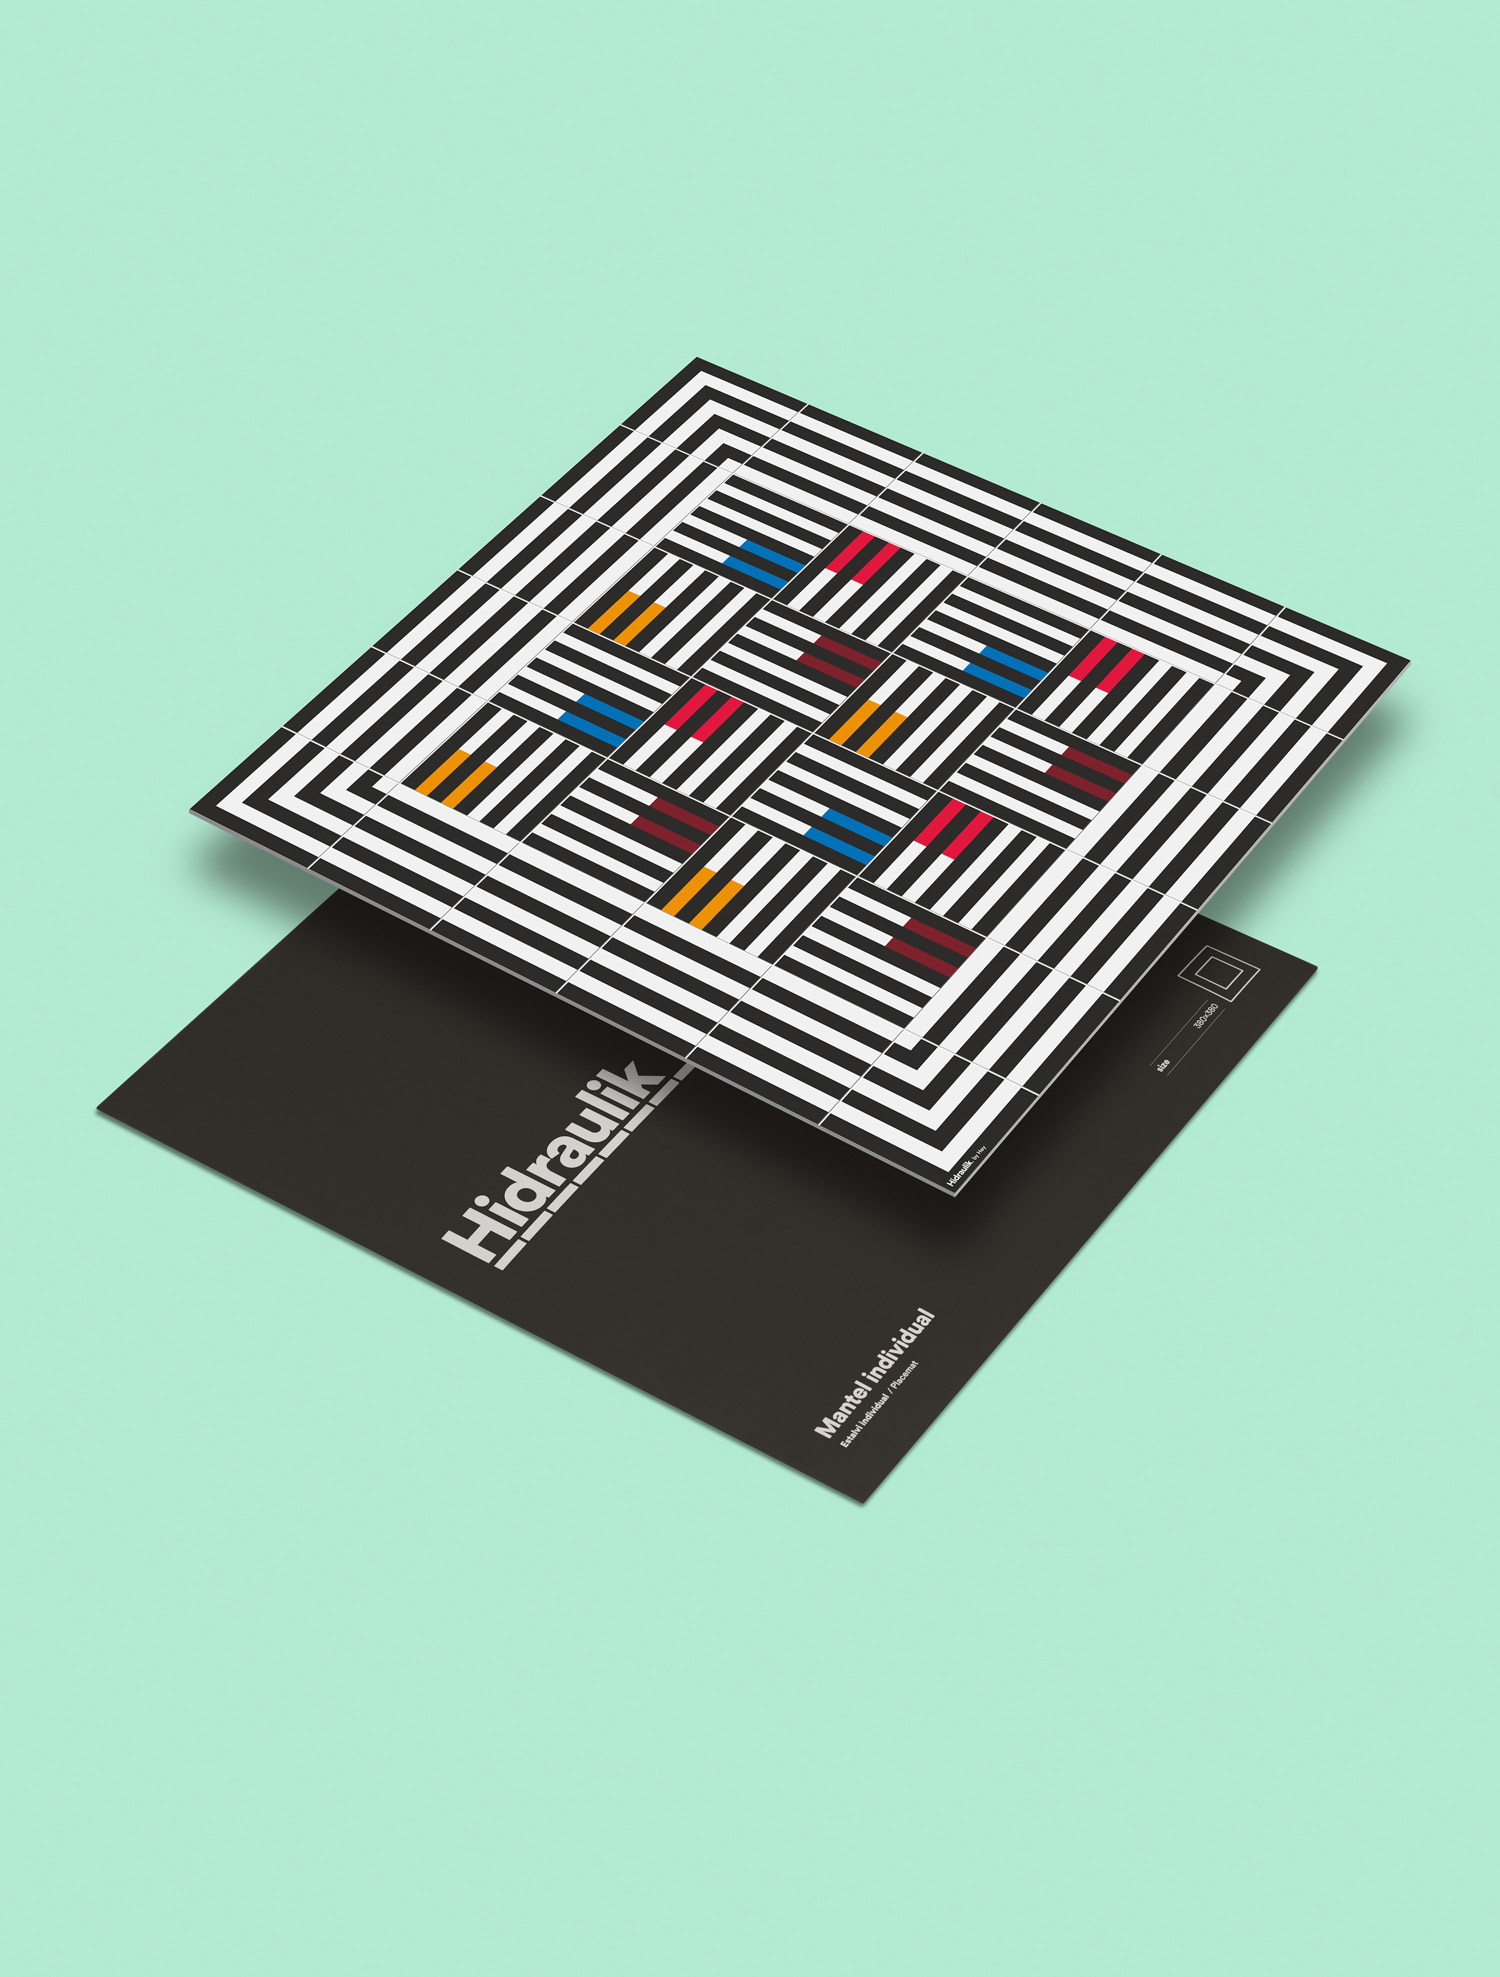 Hidraulik x Hey, a new range of 100% PVC floor and table mats inspired by 20th century modernism